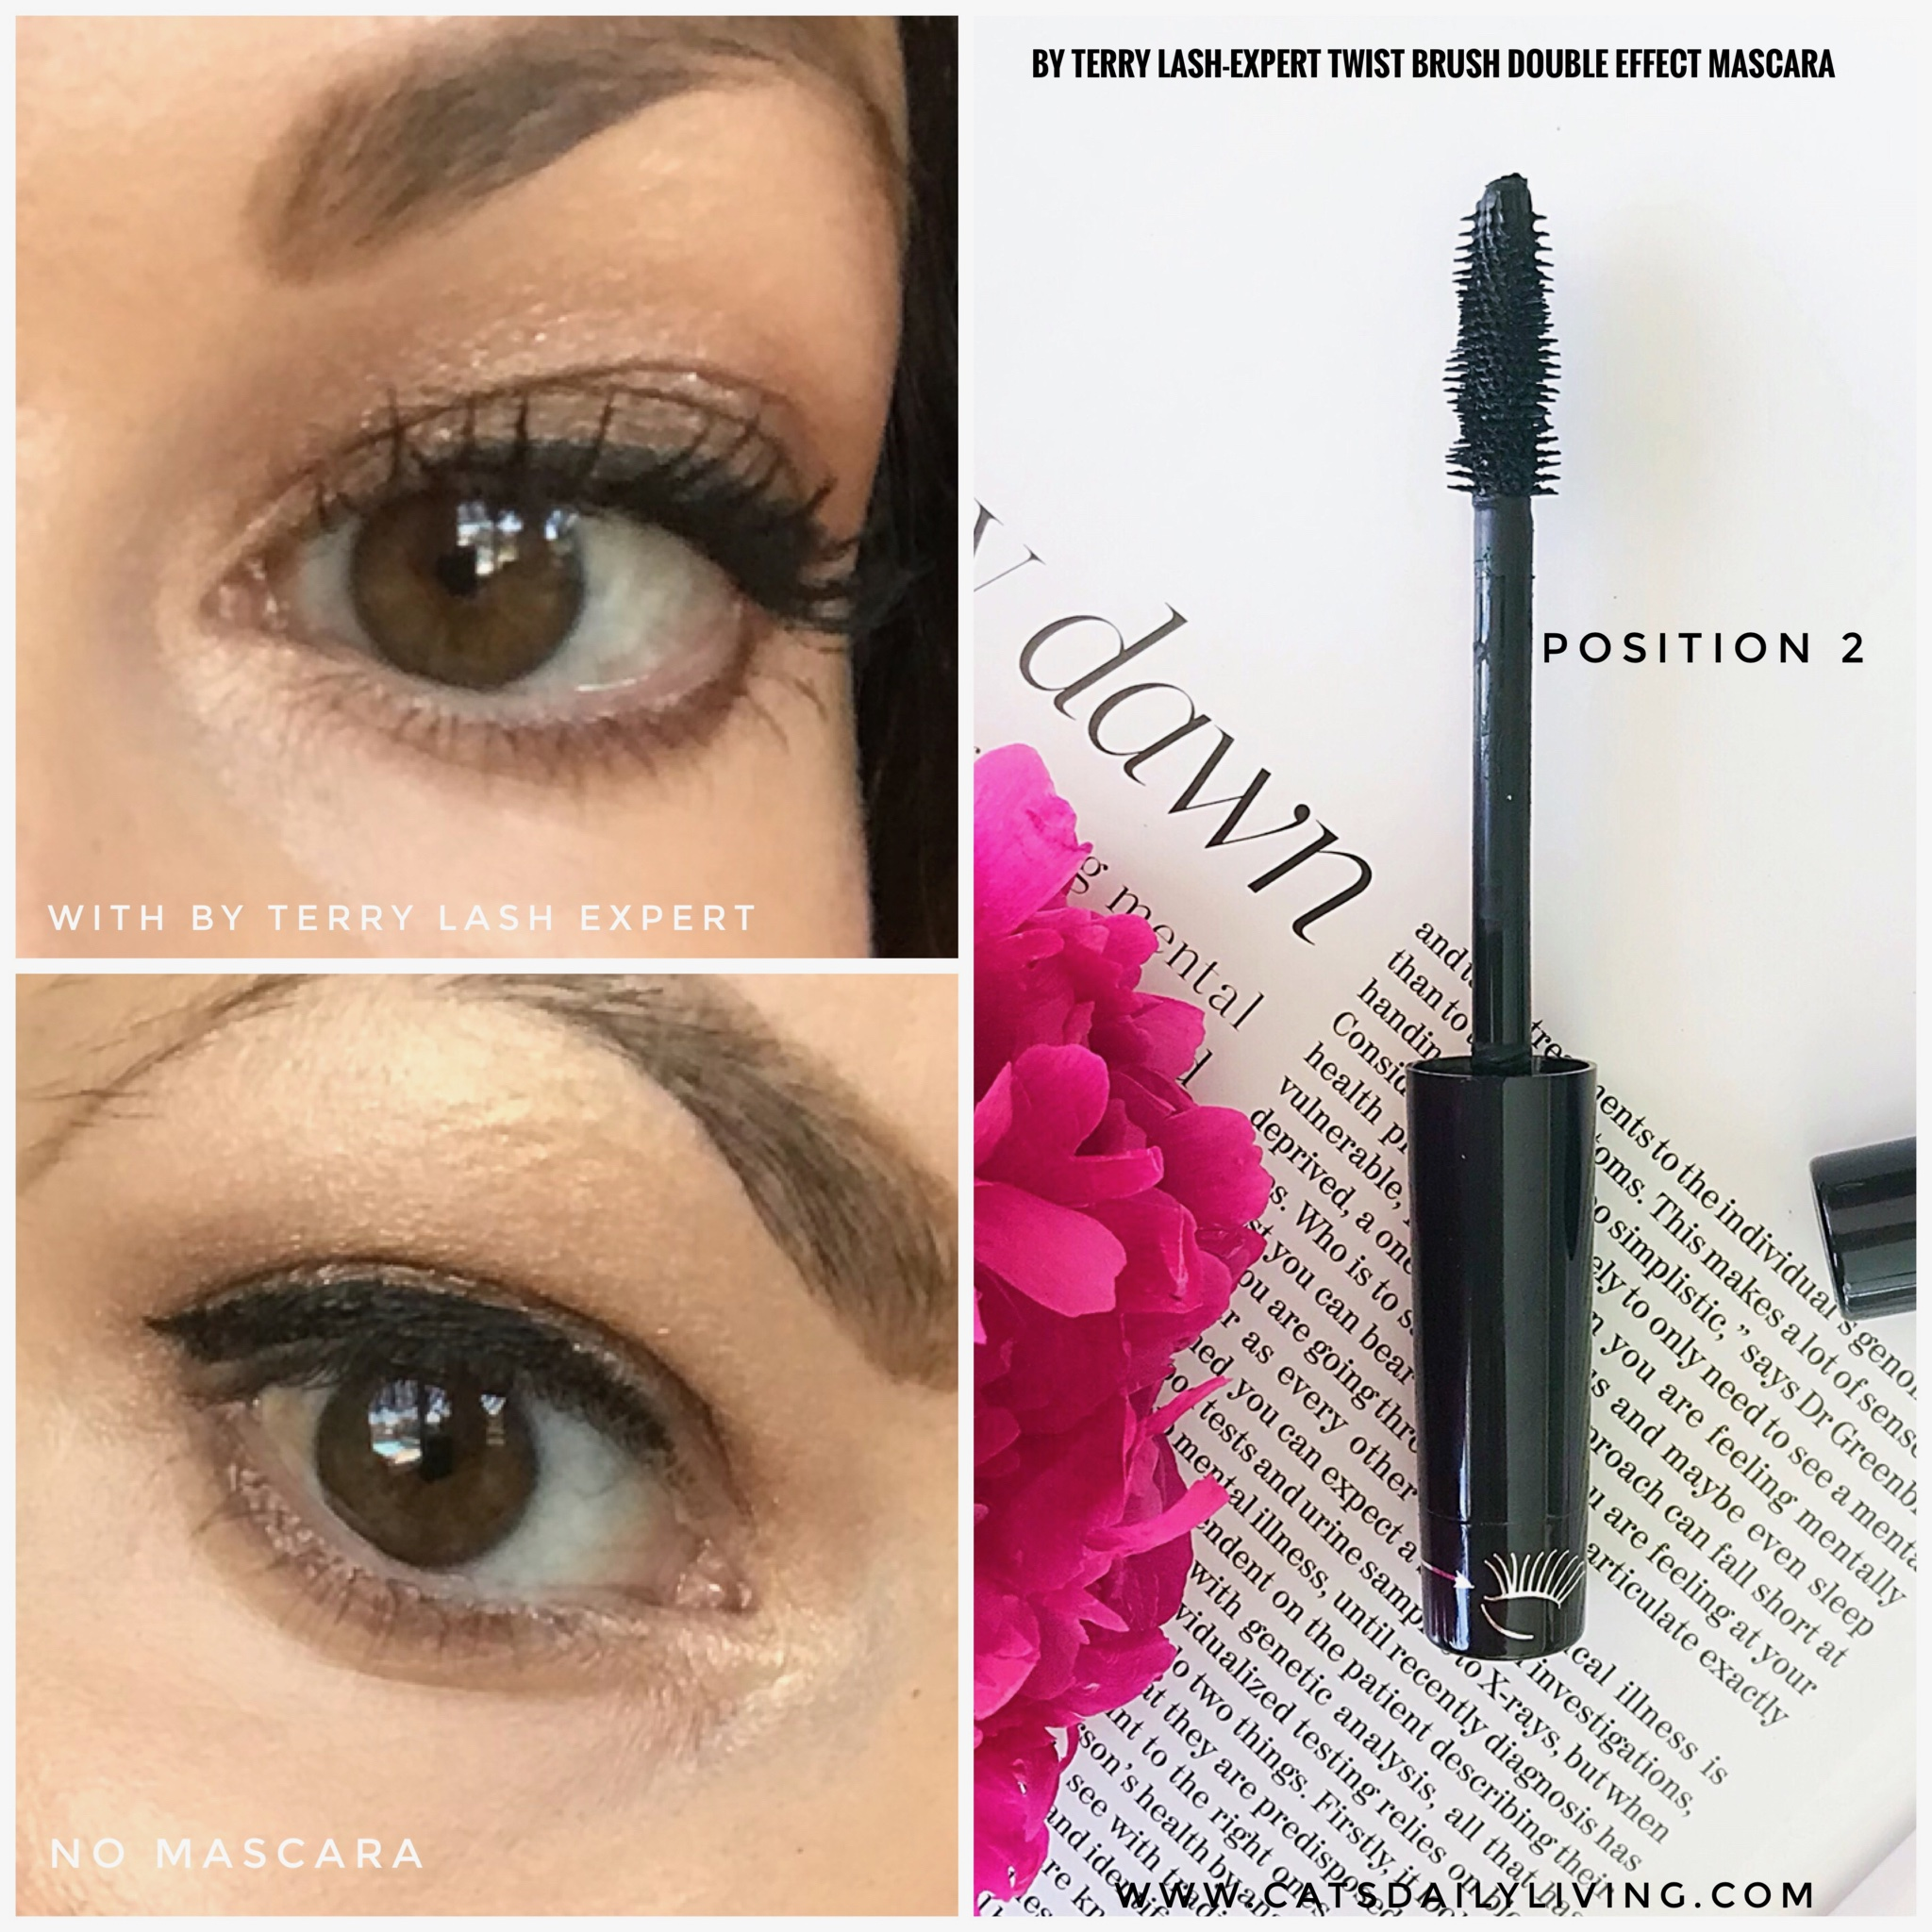 By Terry Lash-Expert Twist Brush Double Effect Mascara - Cat's Daily